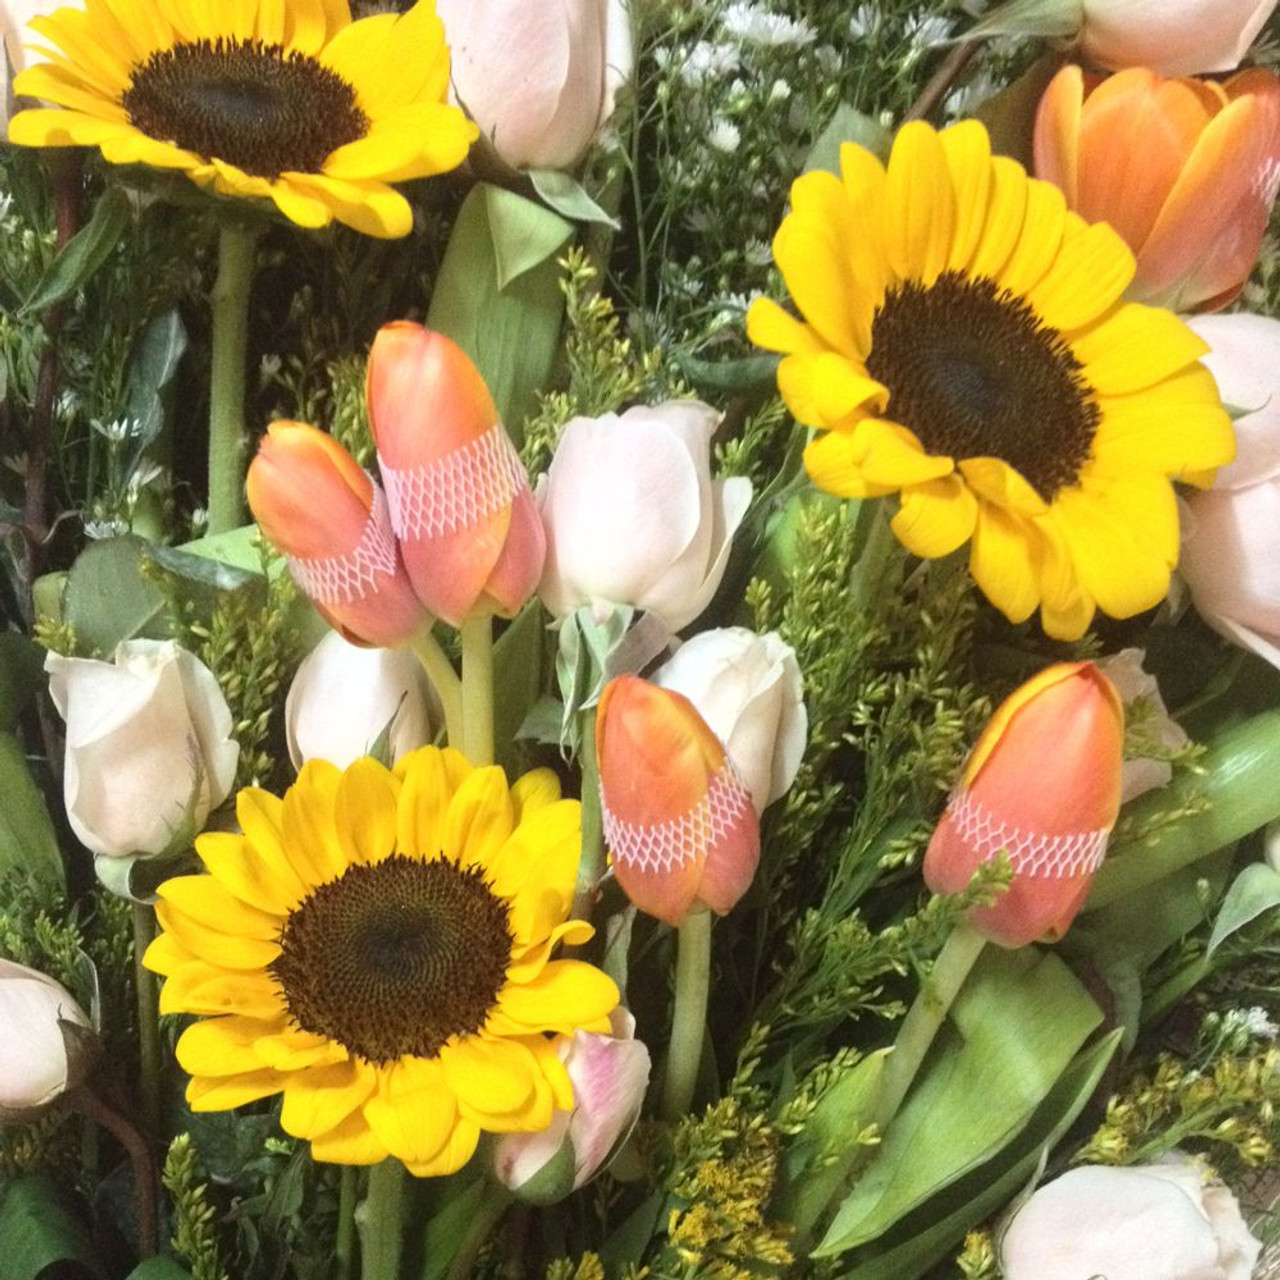 12 Roses, 3 Sunflowers & 4 Tulips Bouquet